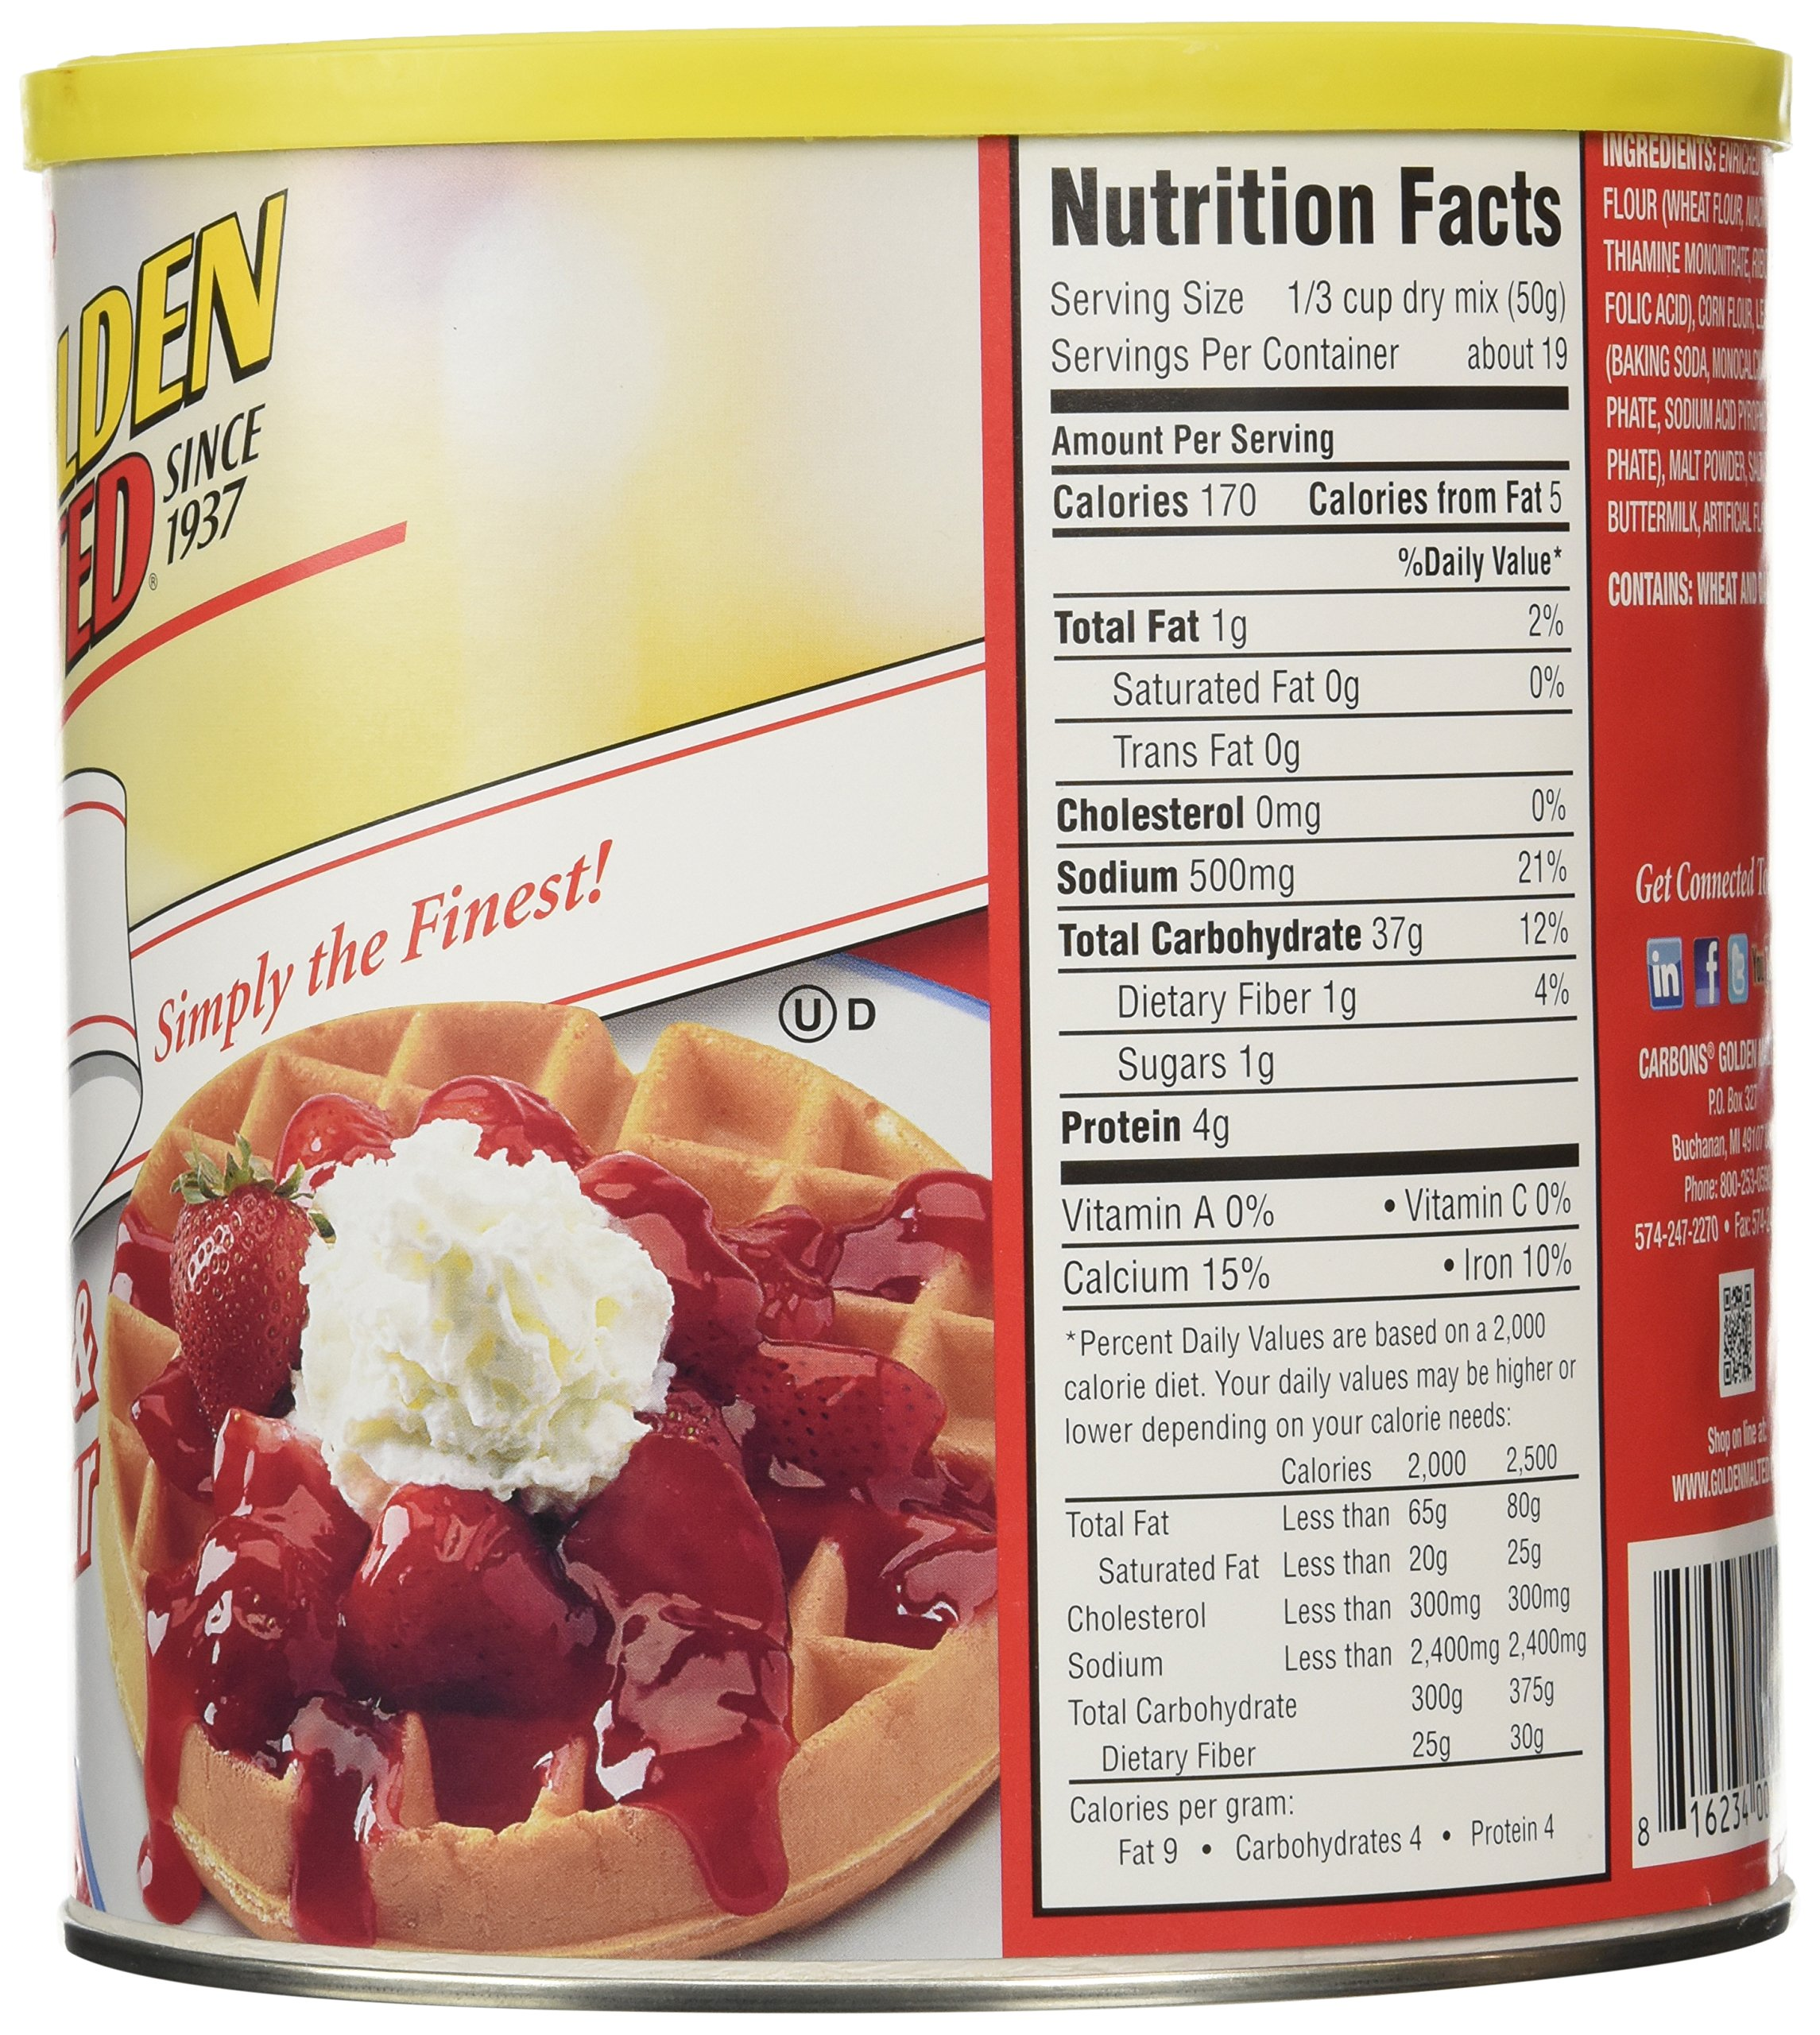 Golden Malted Waffle and Pancake Flour, Original, 33-Ounce Can by Golden Malted (Image #4)